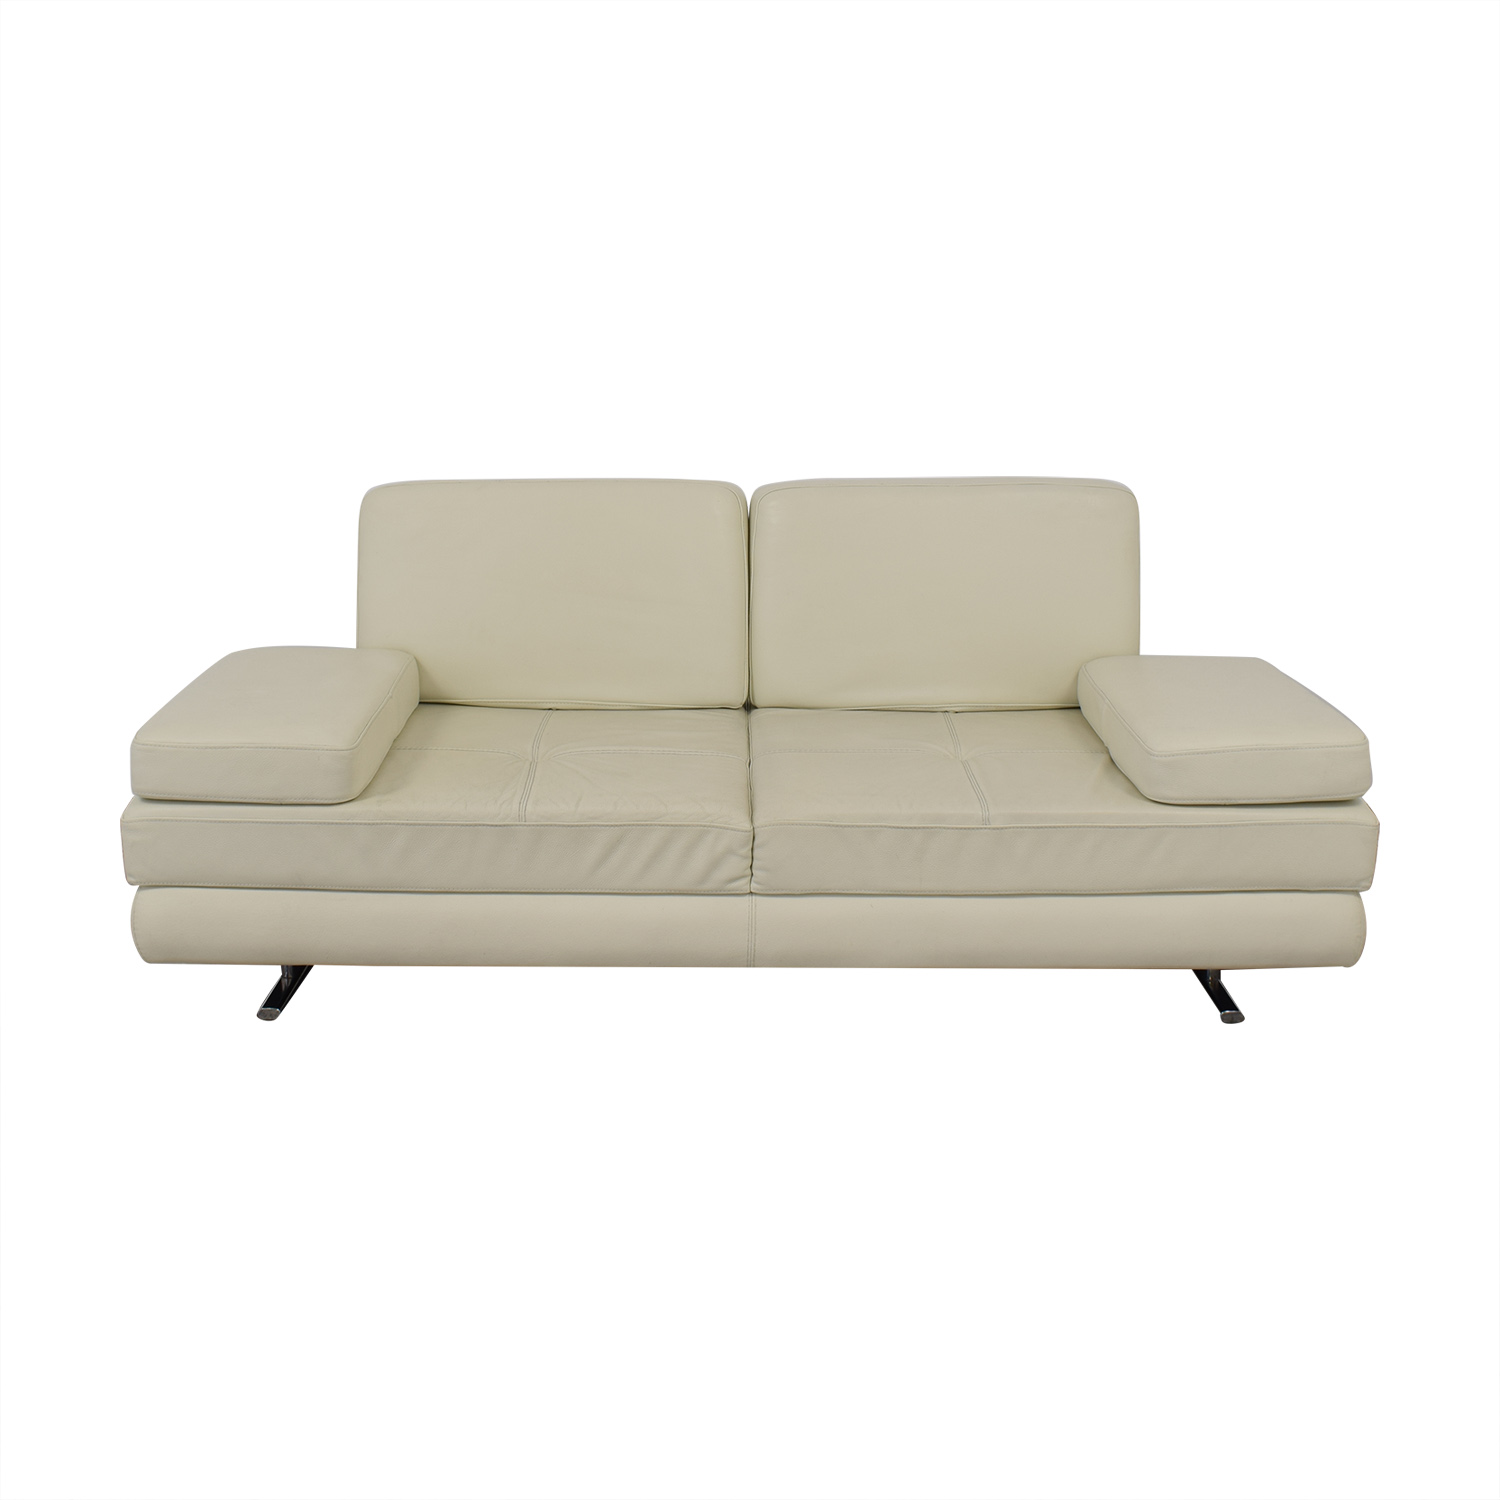 Lazzoni Lazzoni Mony White Full Size Sleeper Sofa nj